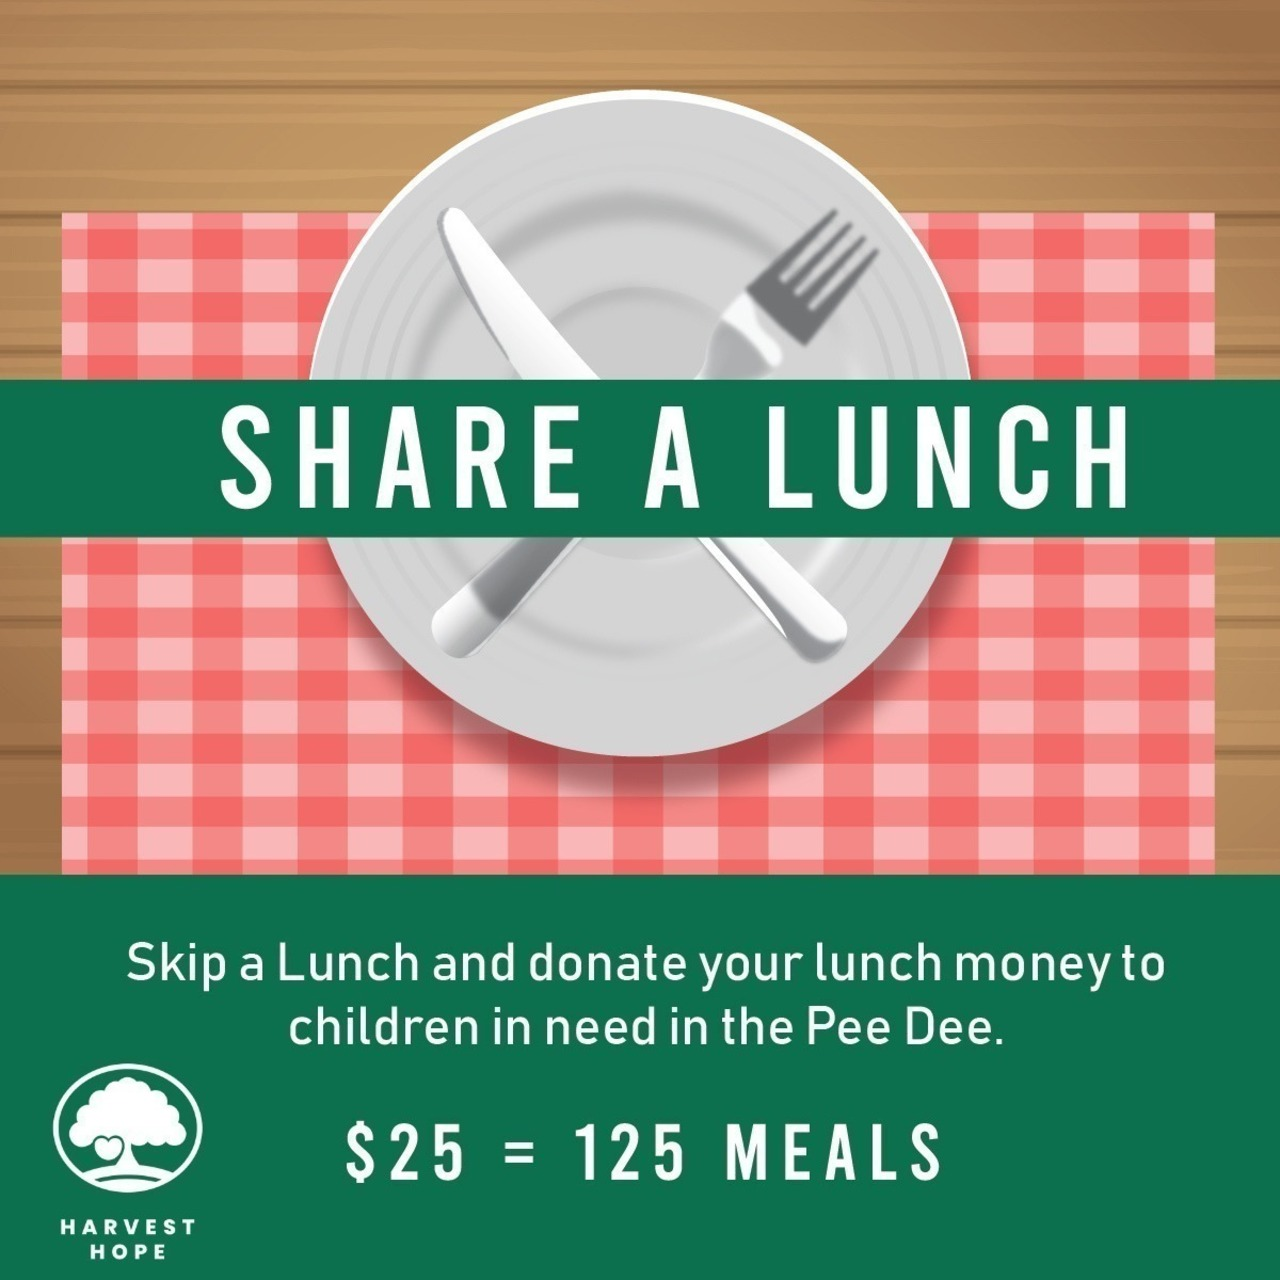 Charlena Bishop's Share a Lunch Fundraiser for Harvest Hope